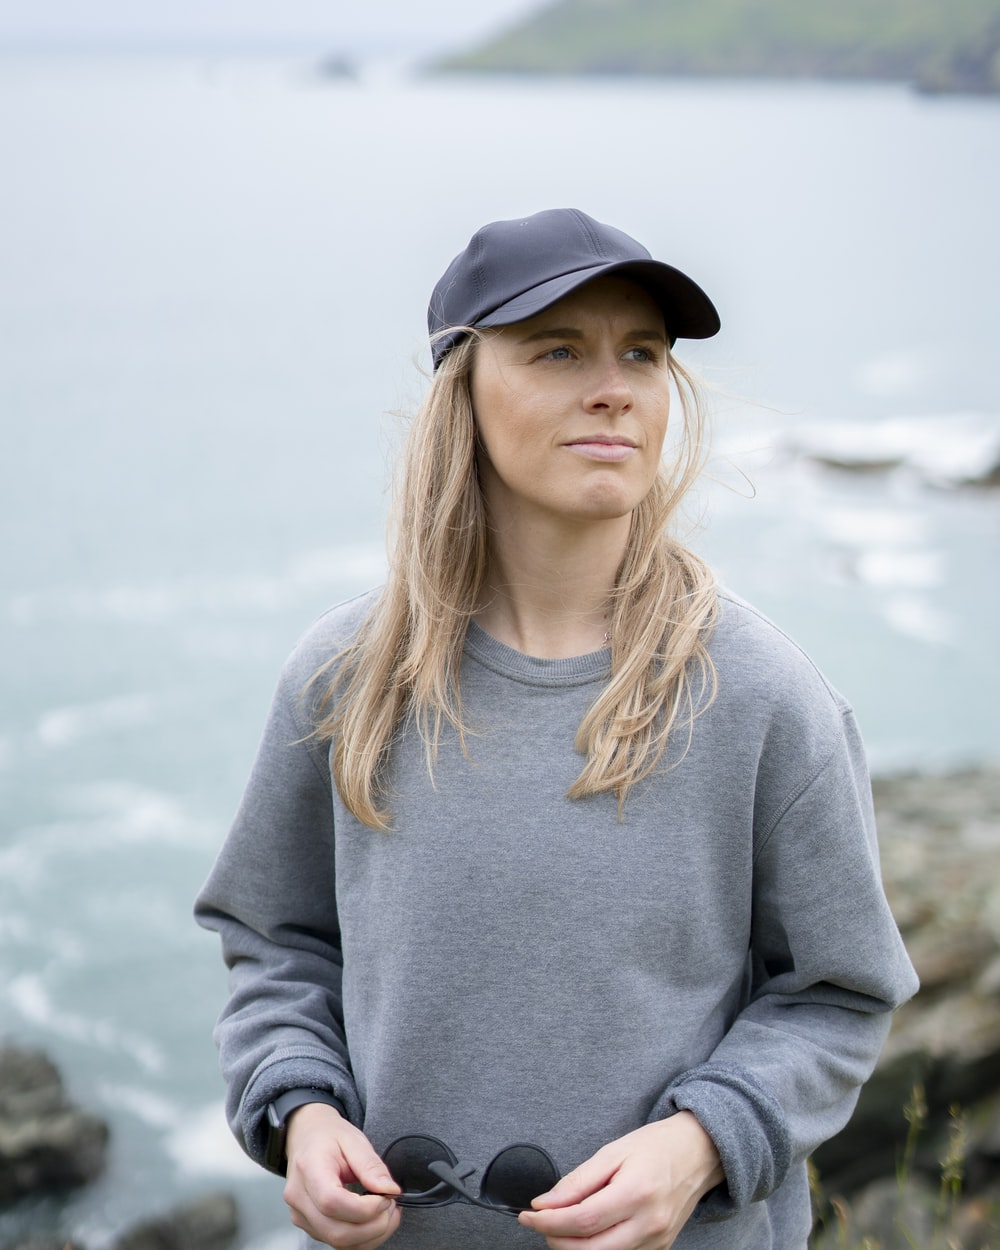 woman in gray long sleeve shirt and black cap